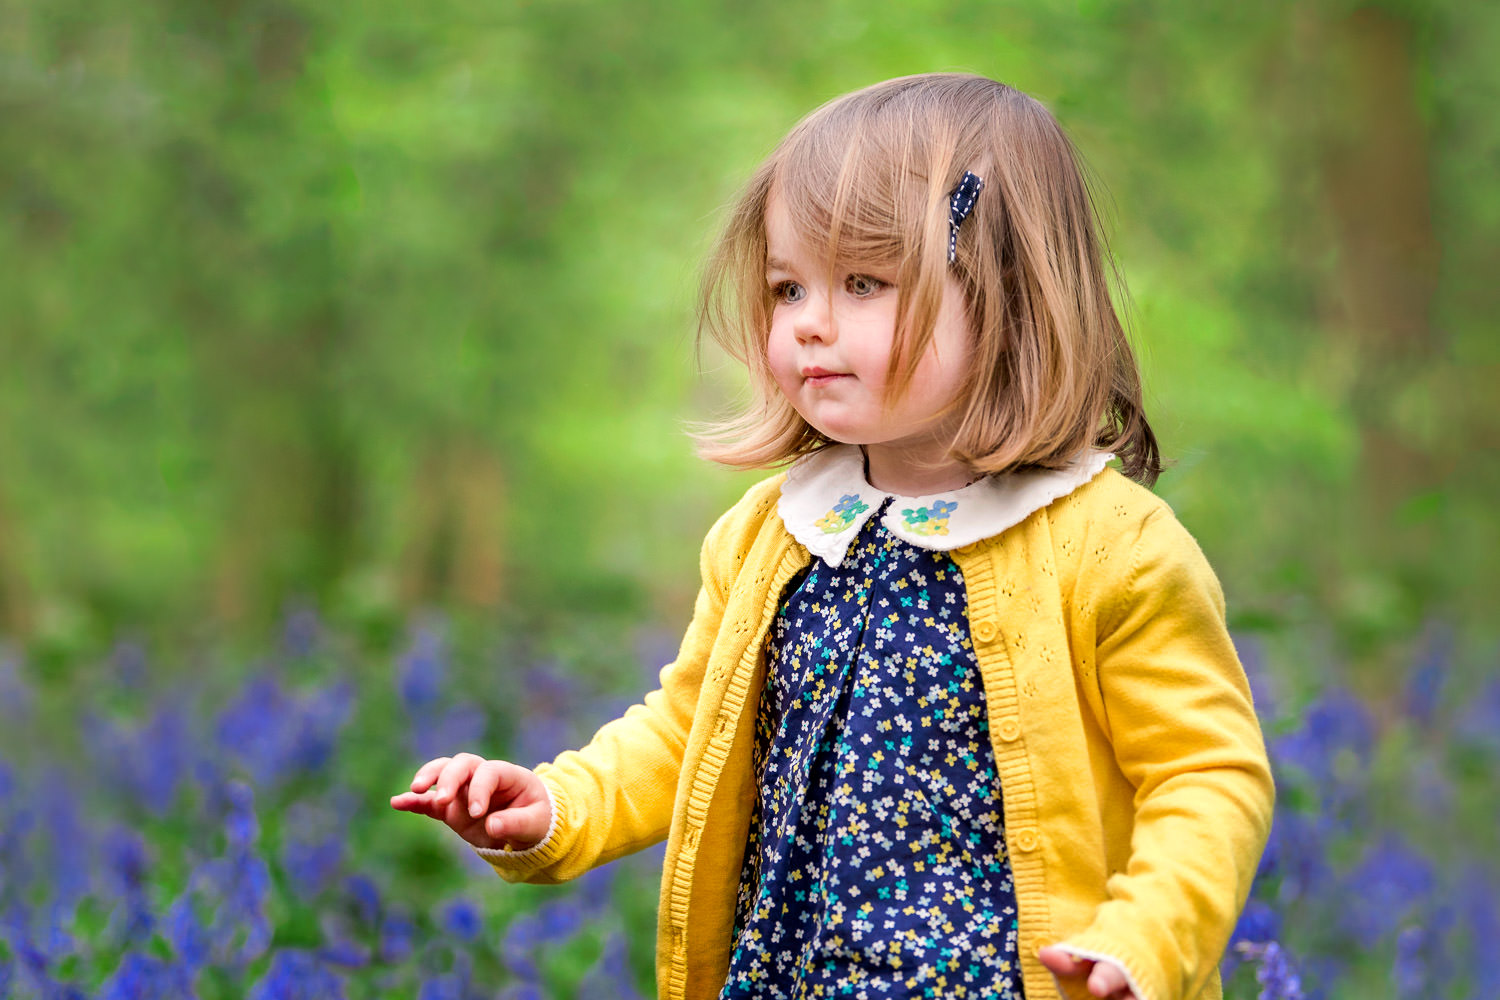 Girl walking through bluebells